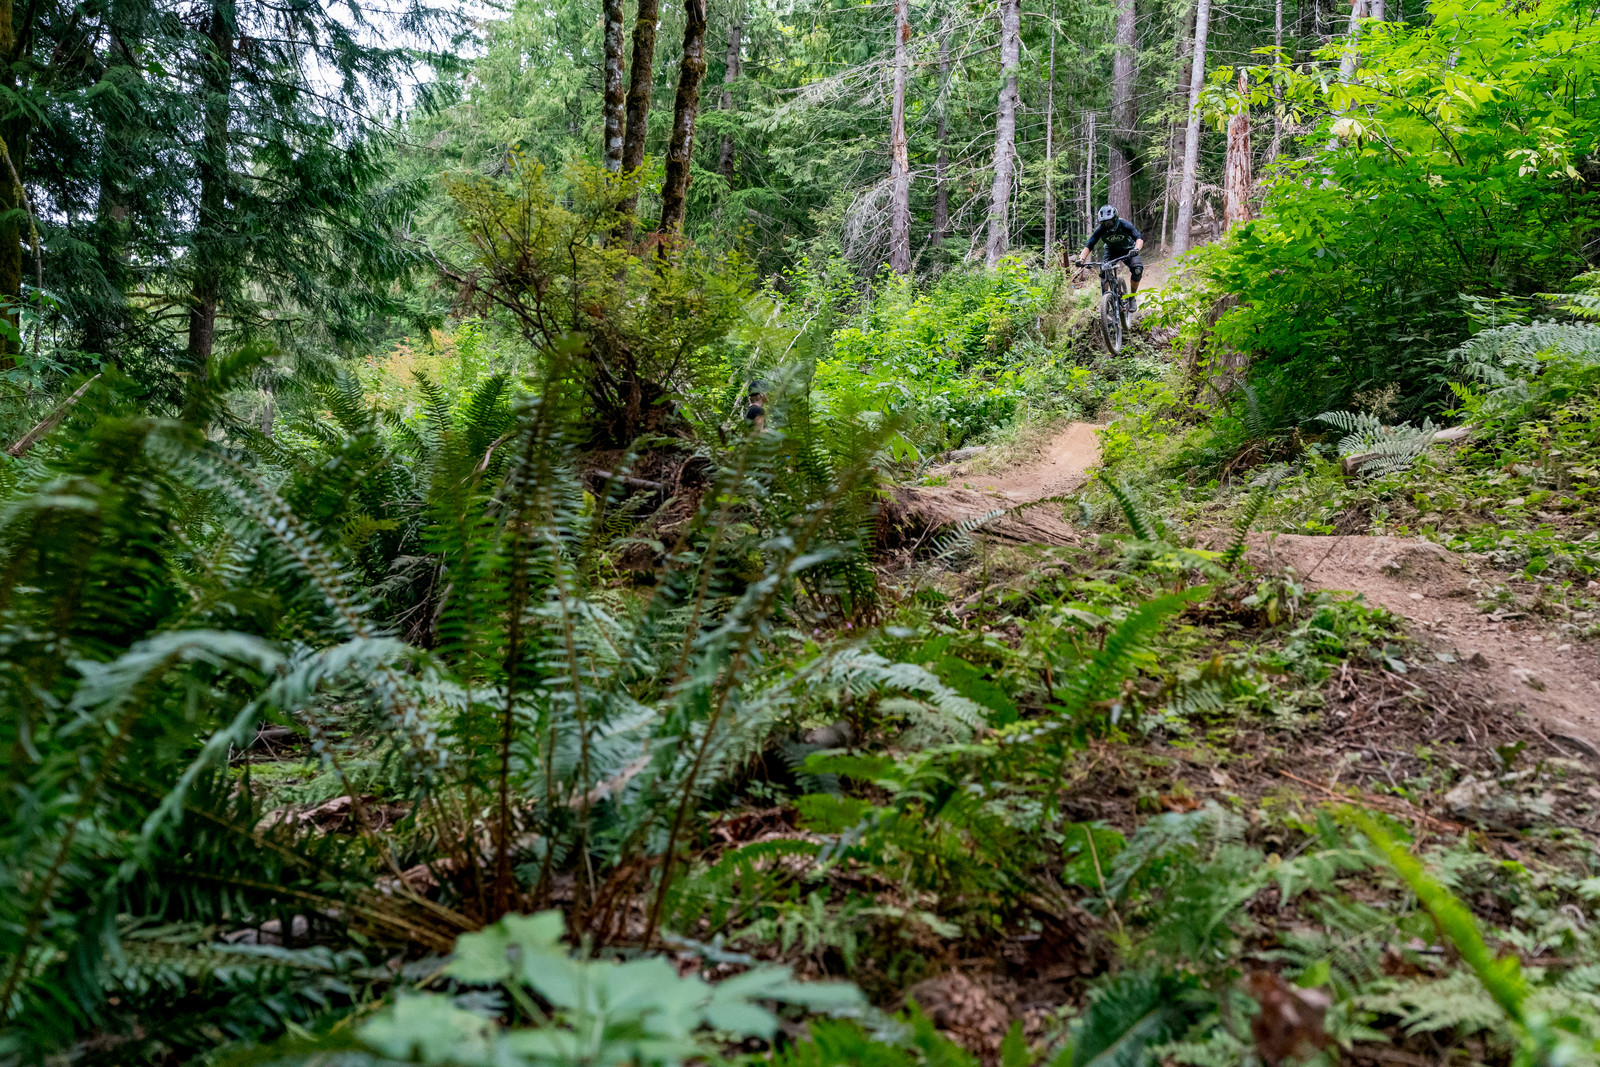 Even though it was a dry and dusty race.... the PNW forest is still lush and green.